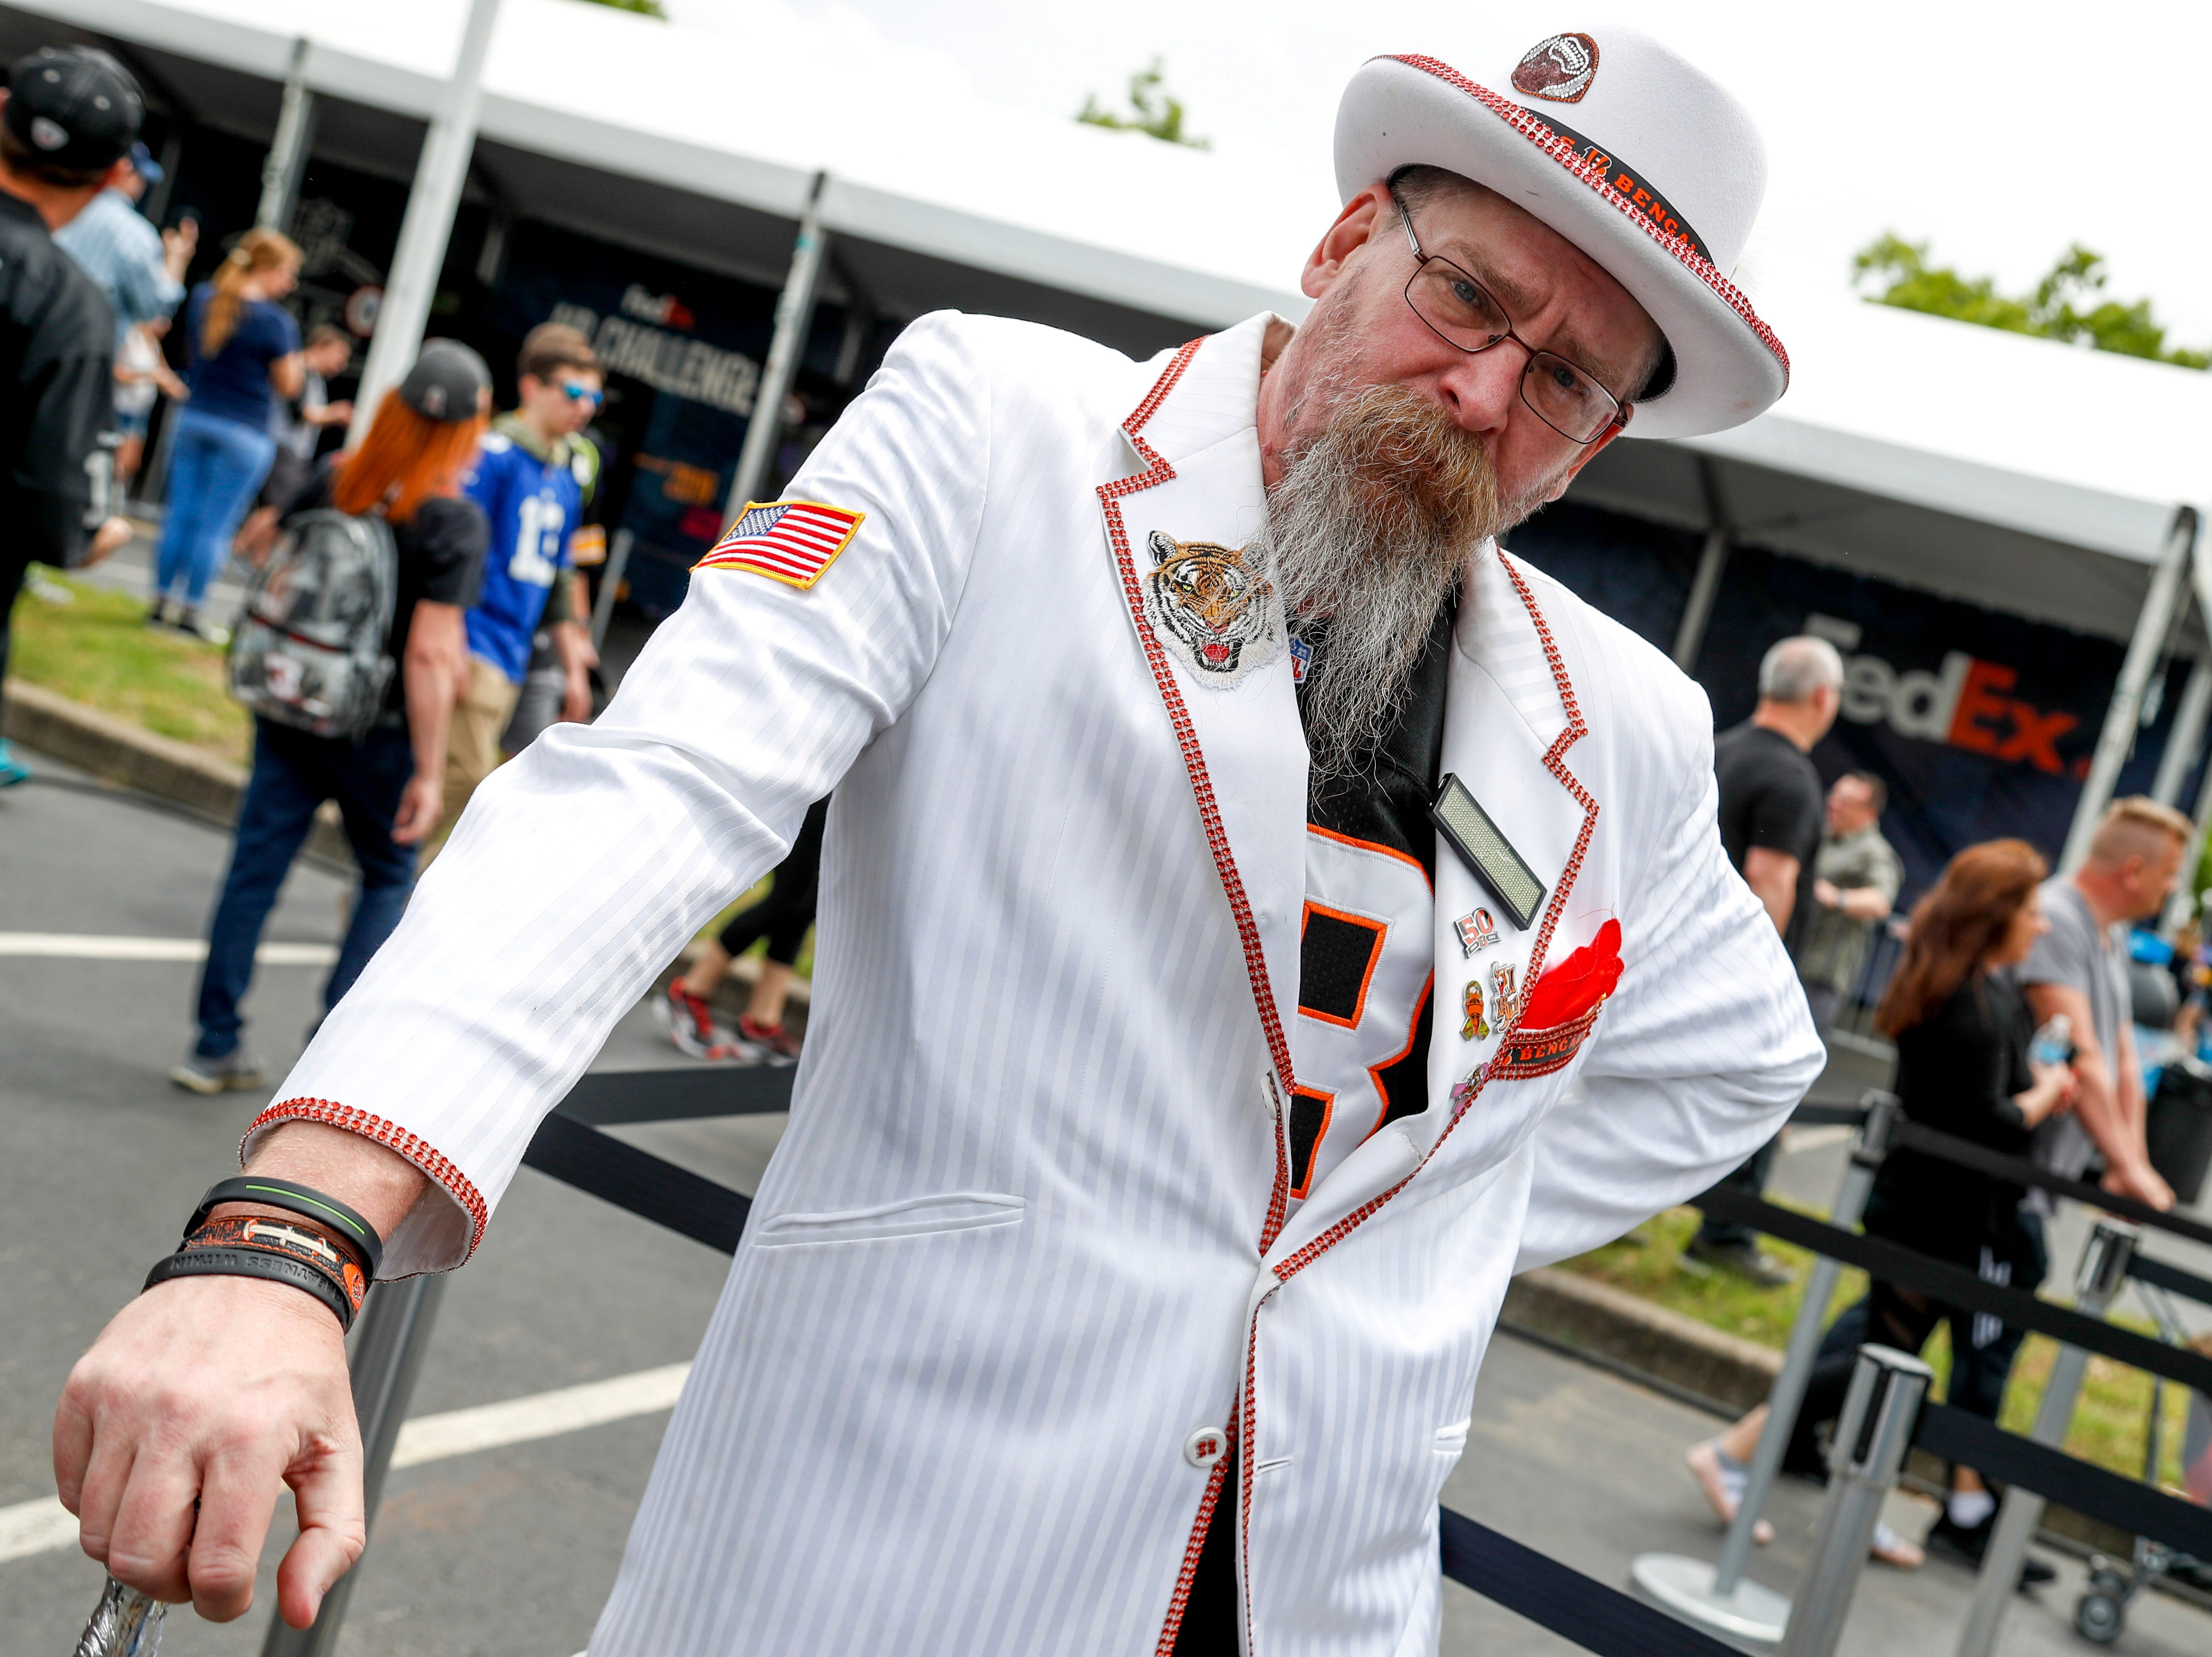 Dave Tash holds his Bengals themed cane with eloquence while waiting in line for autographs during the NFL Draft Experience at Nissan Stadium in Nashville, Tenn., on Thursday, April 25, 2019.